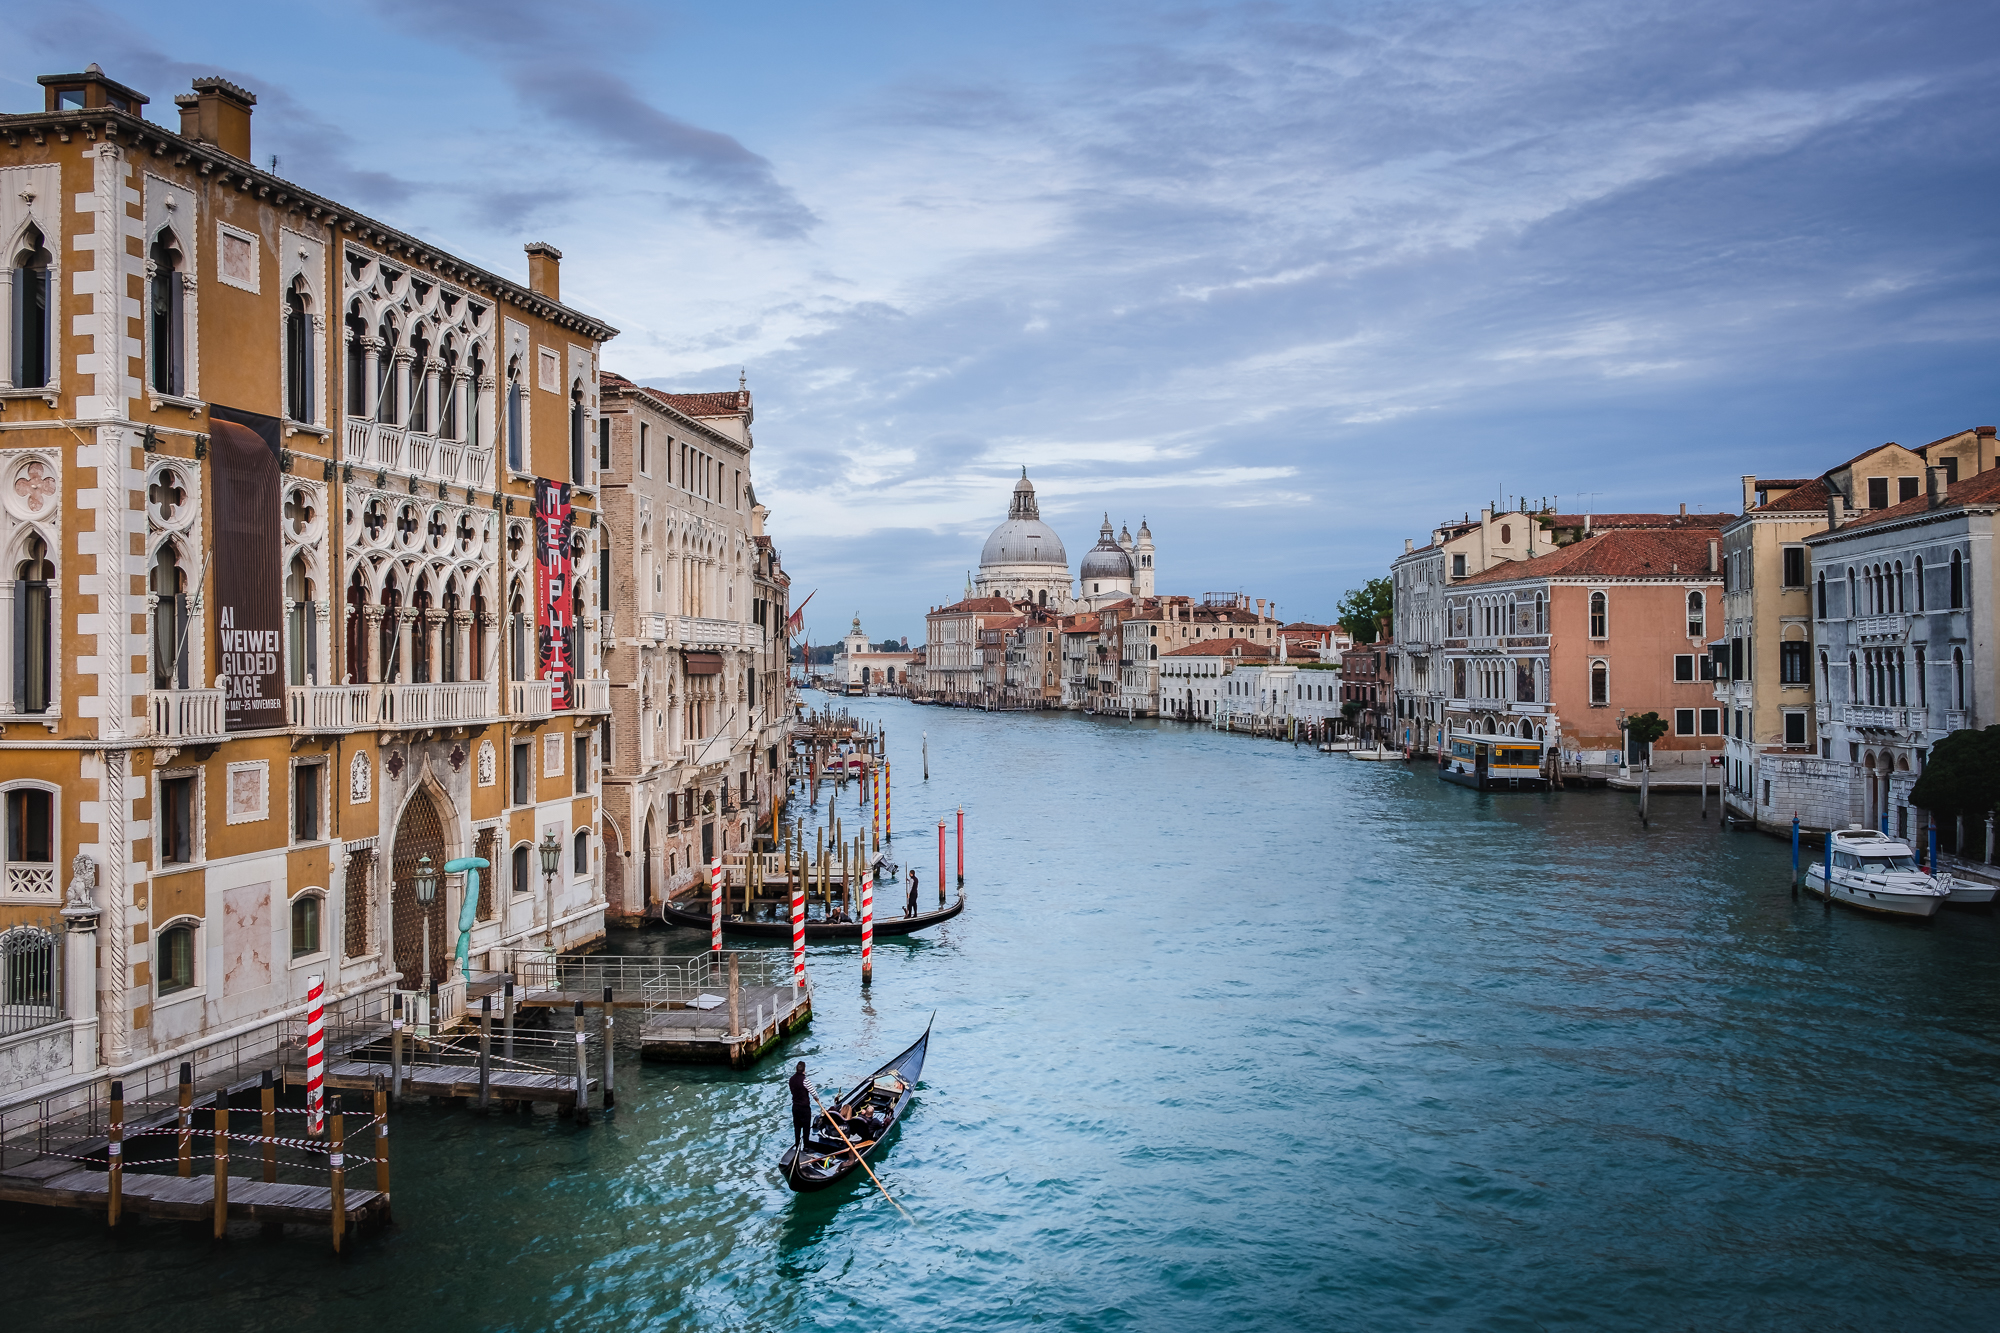 A photo of the Grand Canal in Venice, Italy taken by Trevor Sherwin